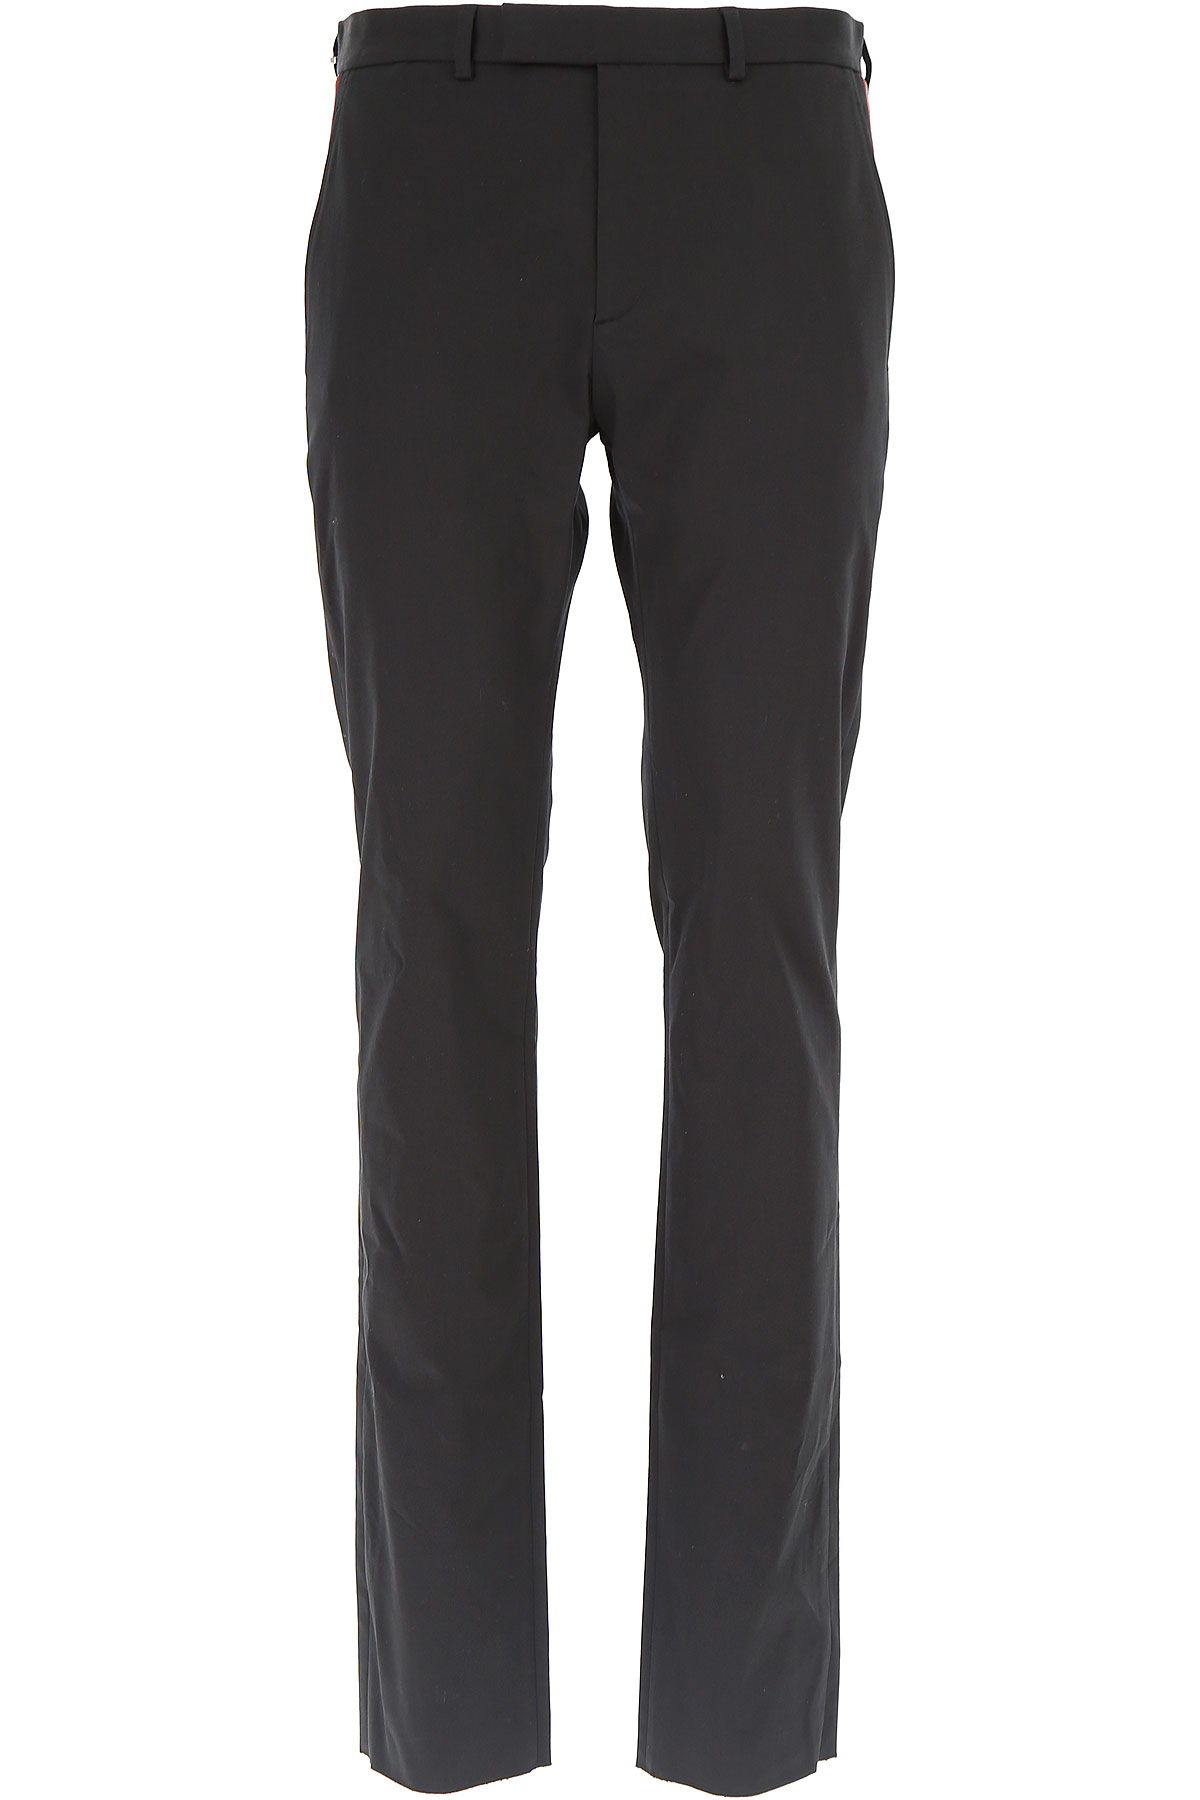 Christian Dior Pants for Men On Sale, Black, Cotton, 2017, 30 34 36